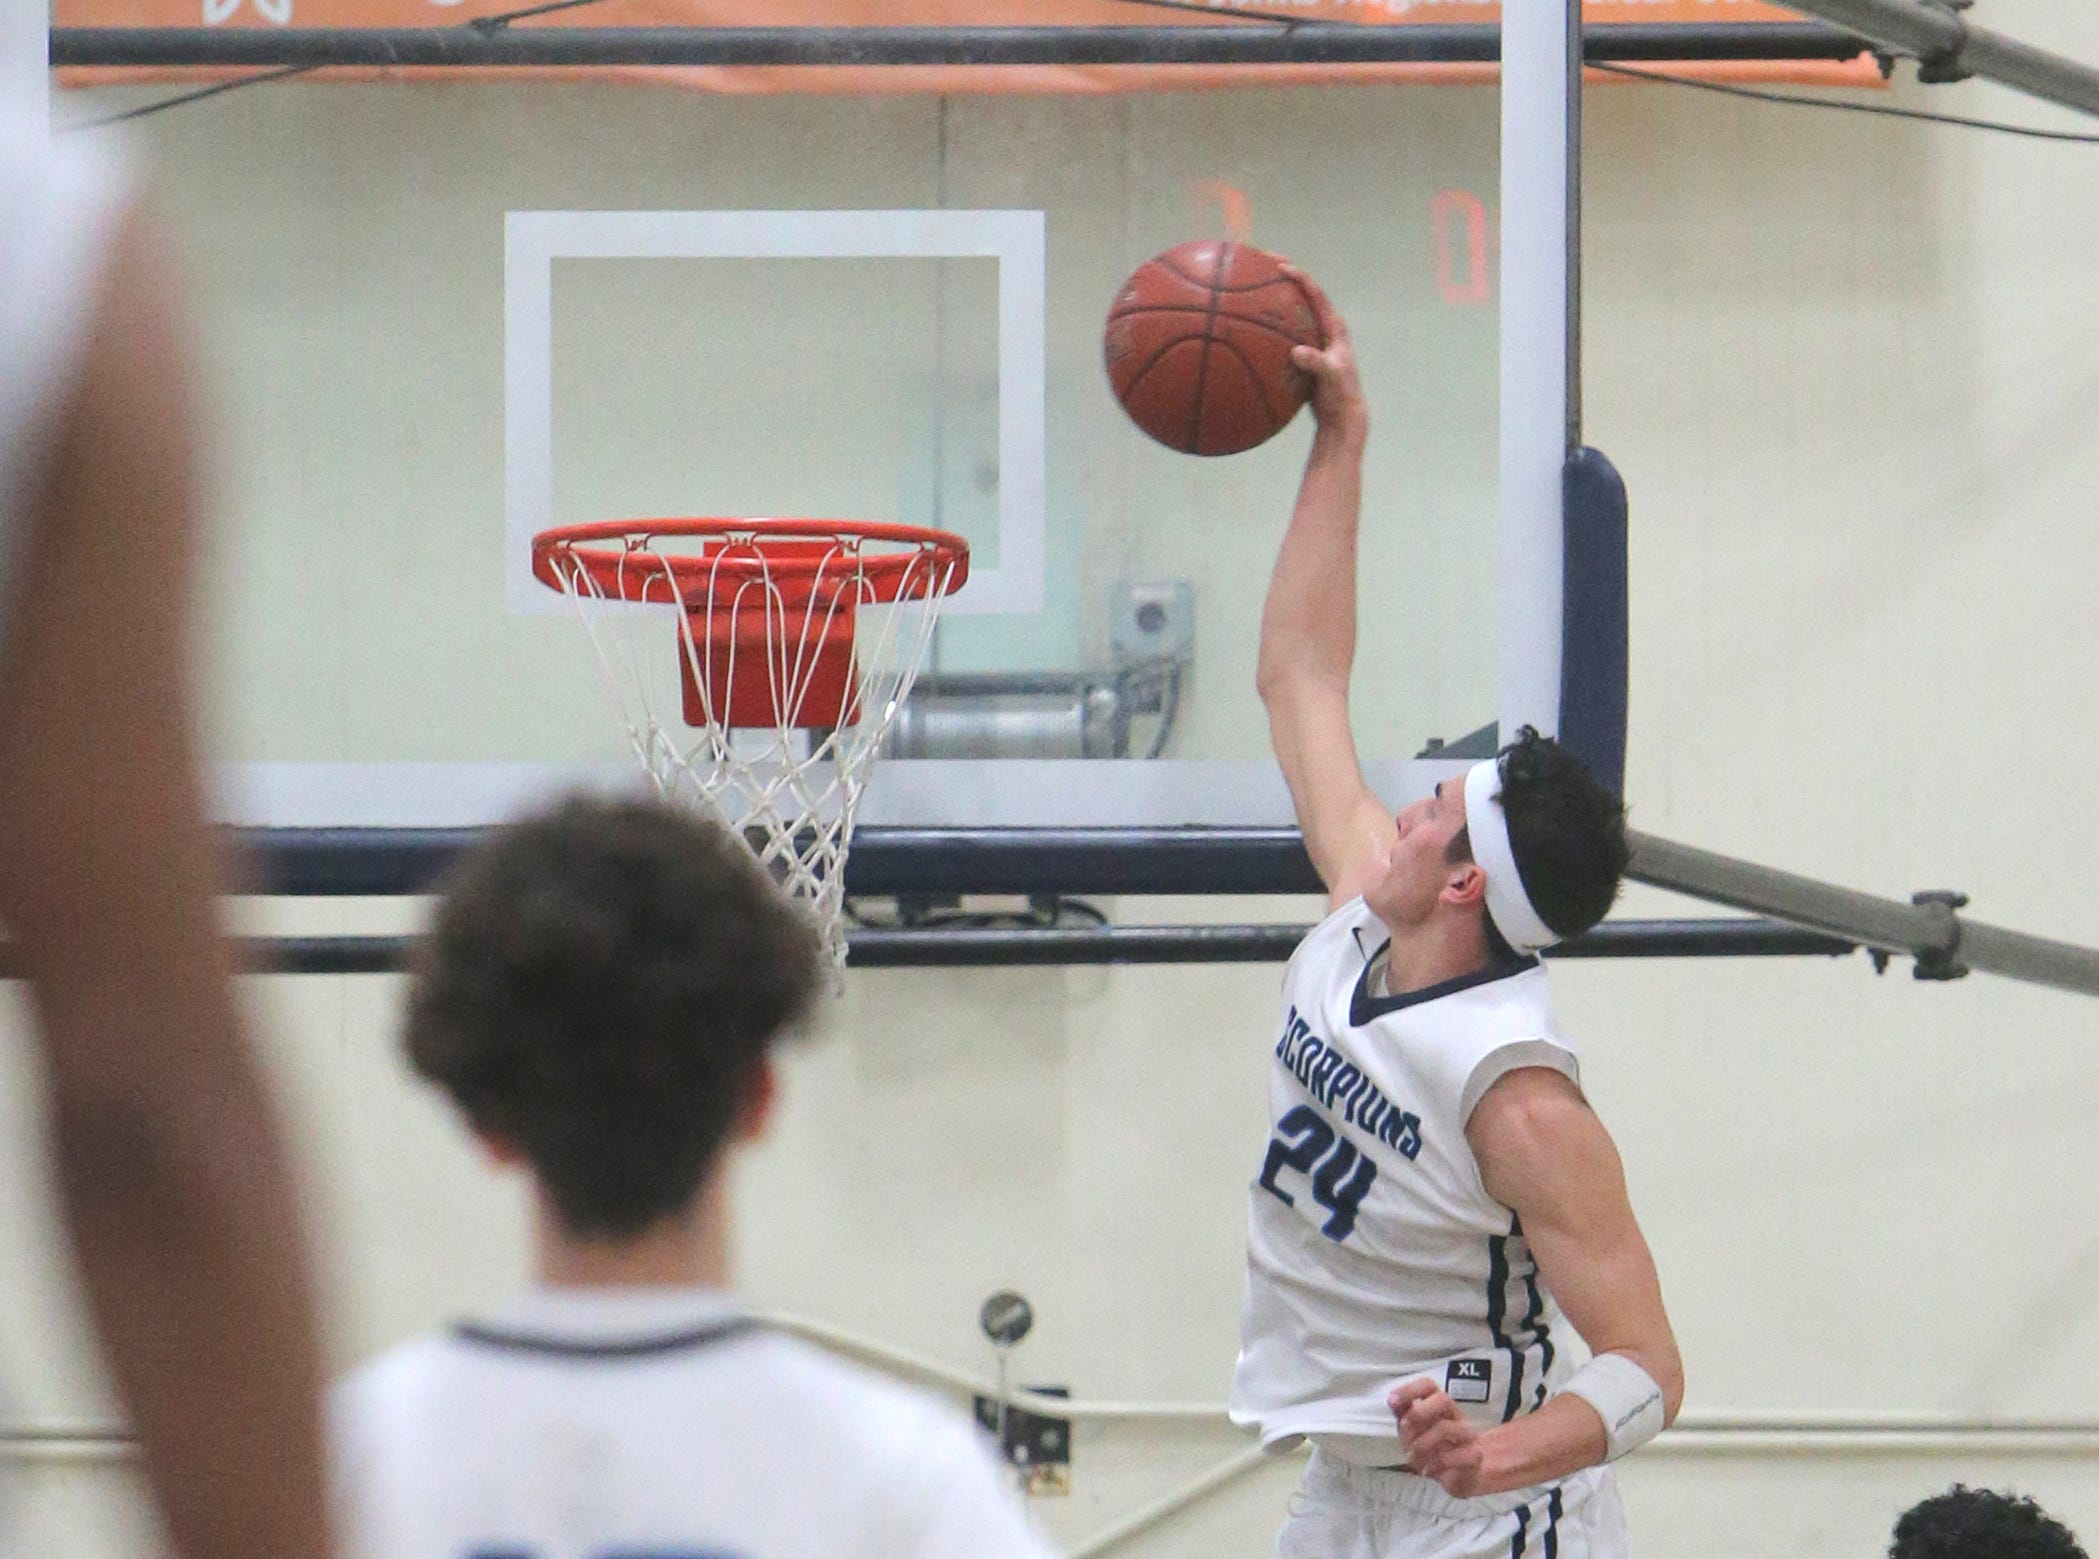 Jaime Jaquez Jr. soars for a slam during Camarillo's 82-68 victory over Moorpark in a Coastal Canyon League showdown Friday night at Camarillo High. Jaquez finished with 34 points.